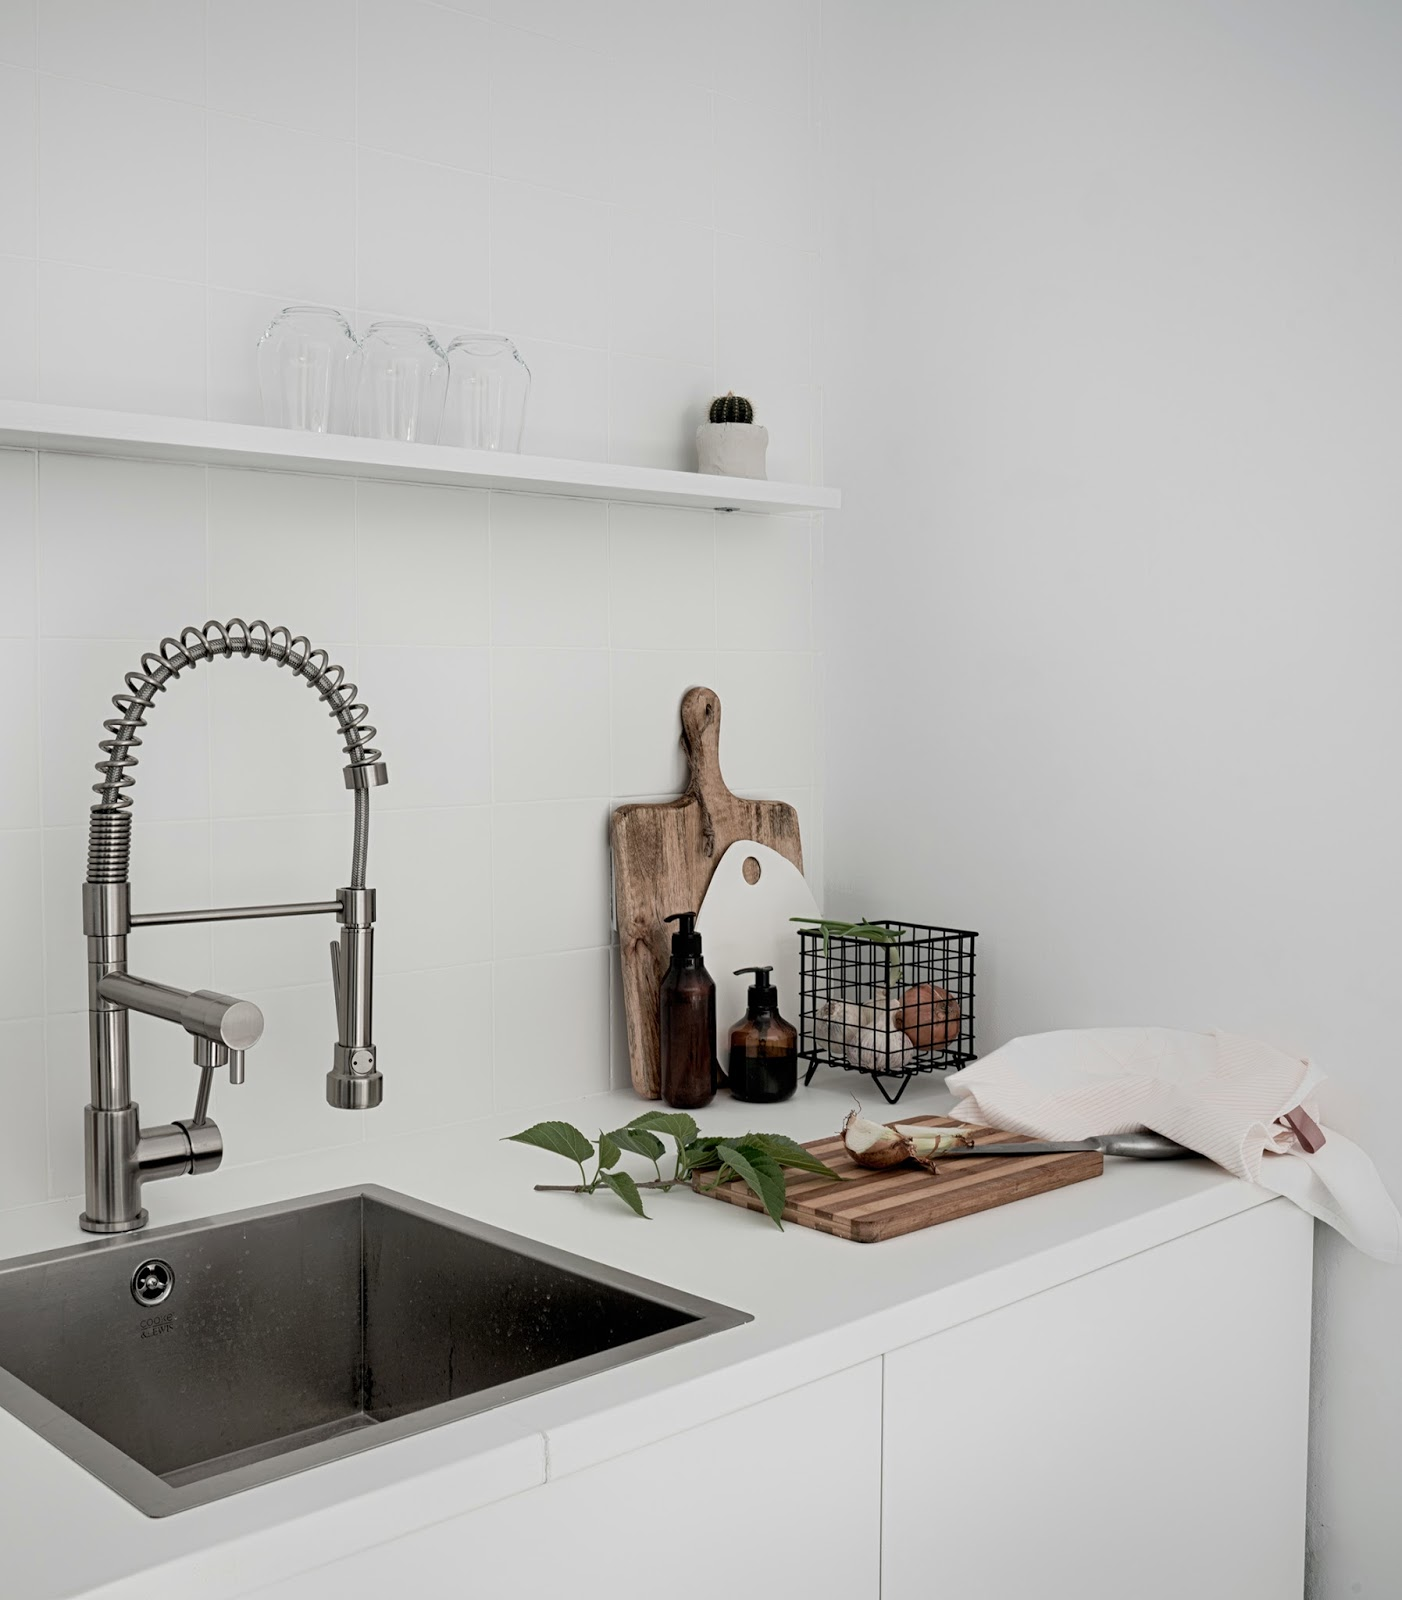 como decorar la cocina, decoracion, cocina, kitchen, nordic decor, decoration, white, fregadero, sink, grifo triple, tabla de cortar, blanco, cocina blanca